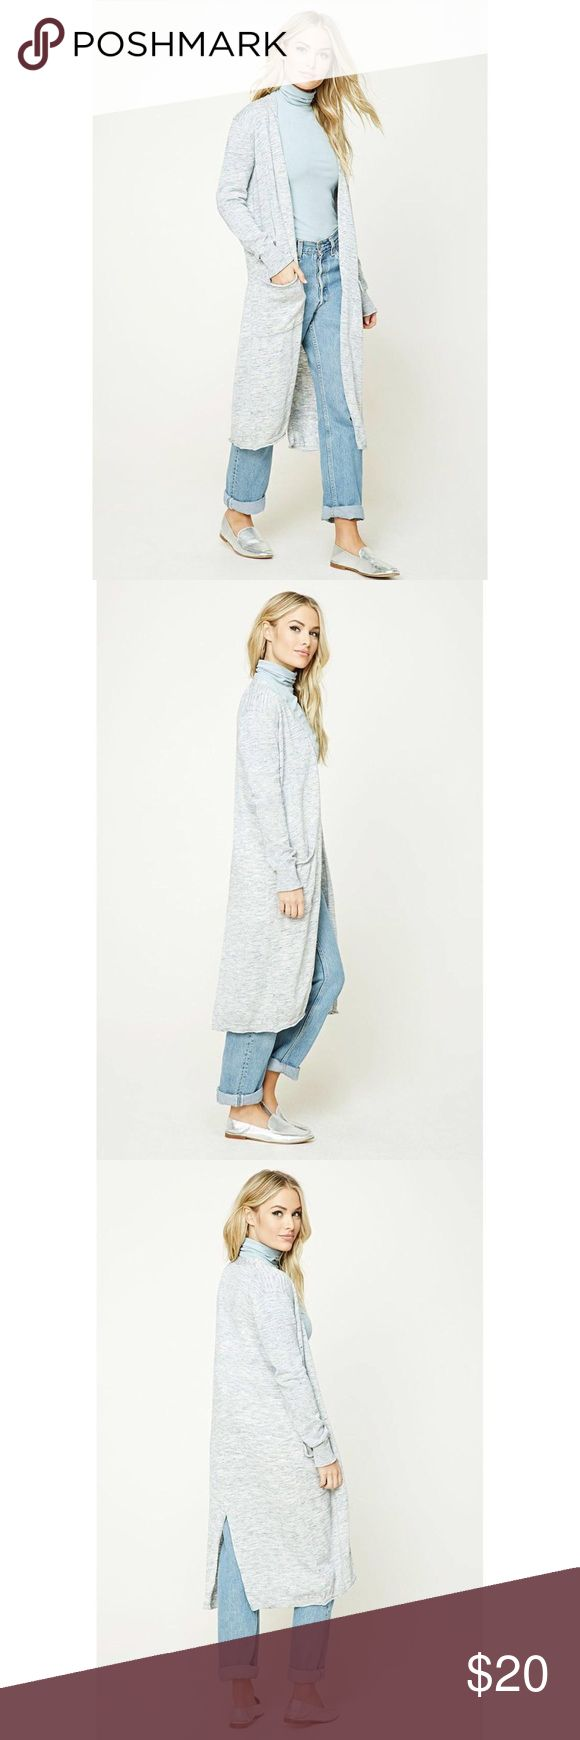 forever 21 || contemporary longline cardigan •new with tag •lightweight marled knit cardigan  •open front •long sleeves with ribbed cuffs •front patch pockets •70% cotton, 30% polyester Forever 21 Sweaters Cardigans